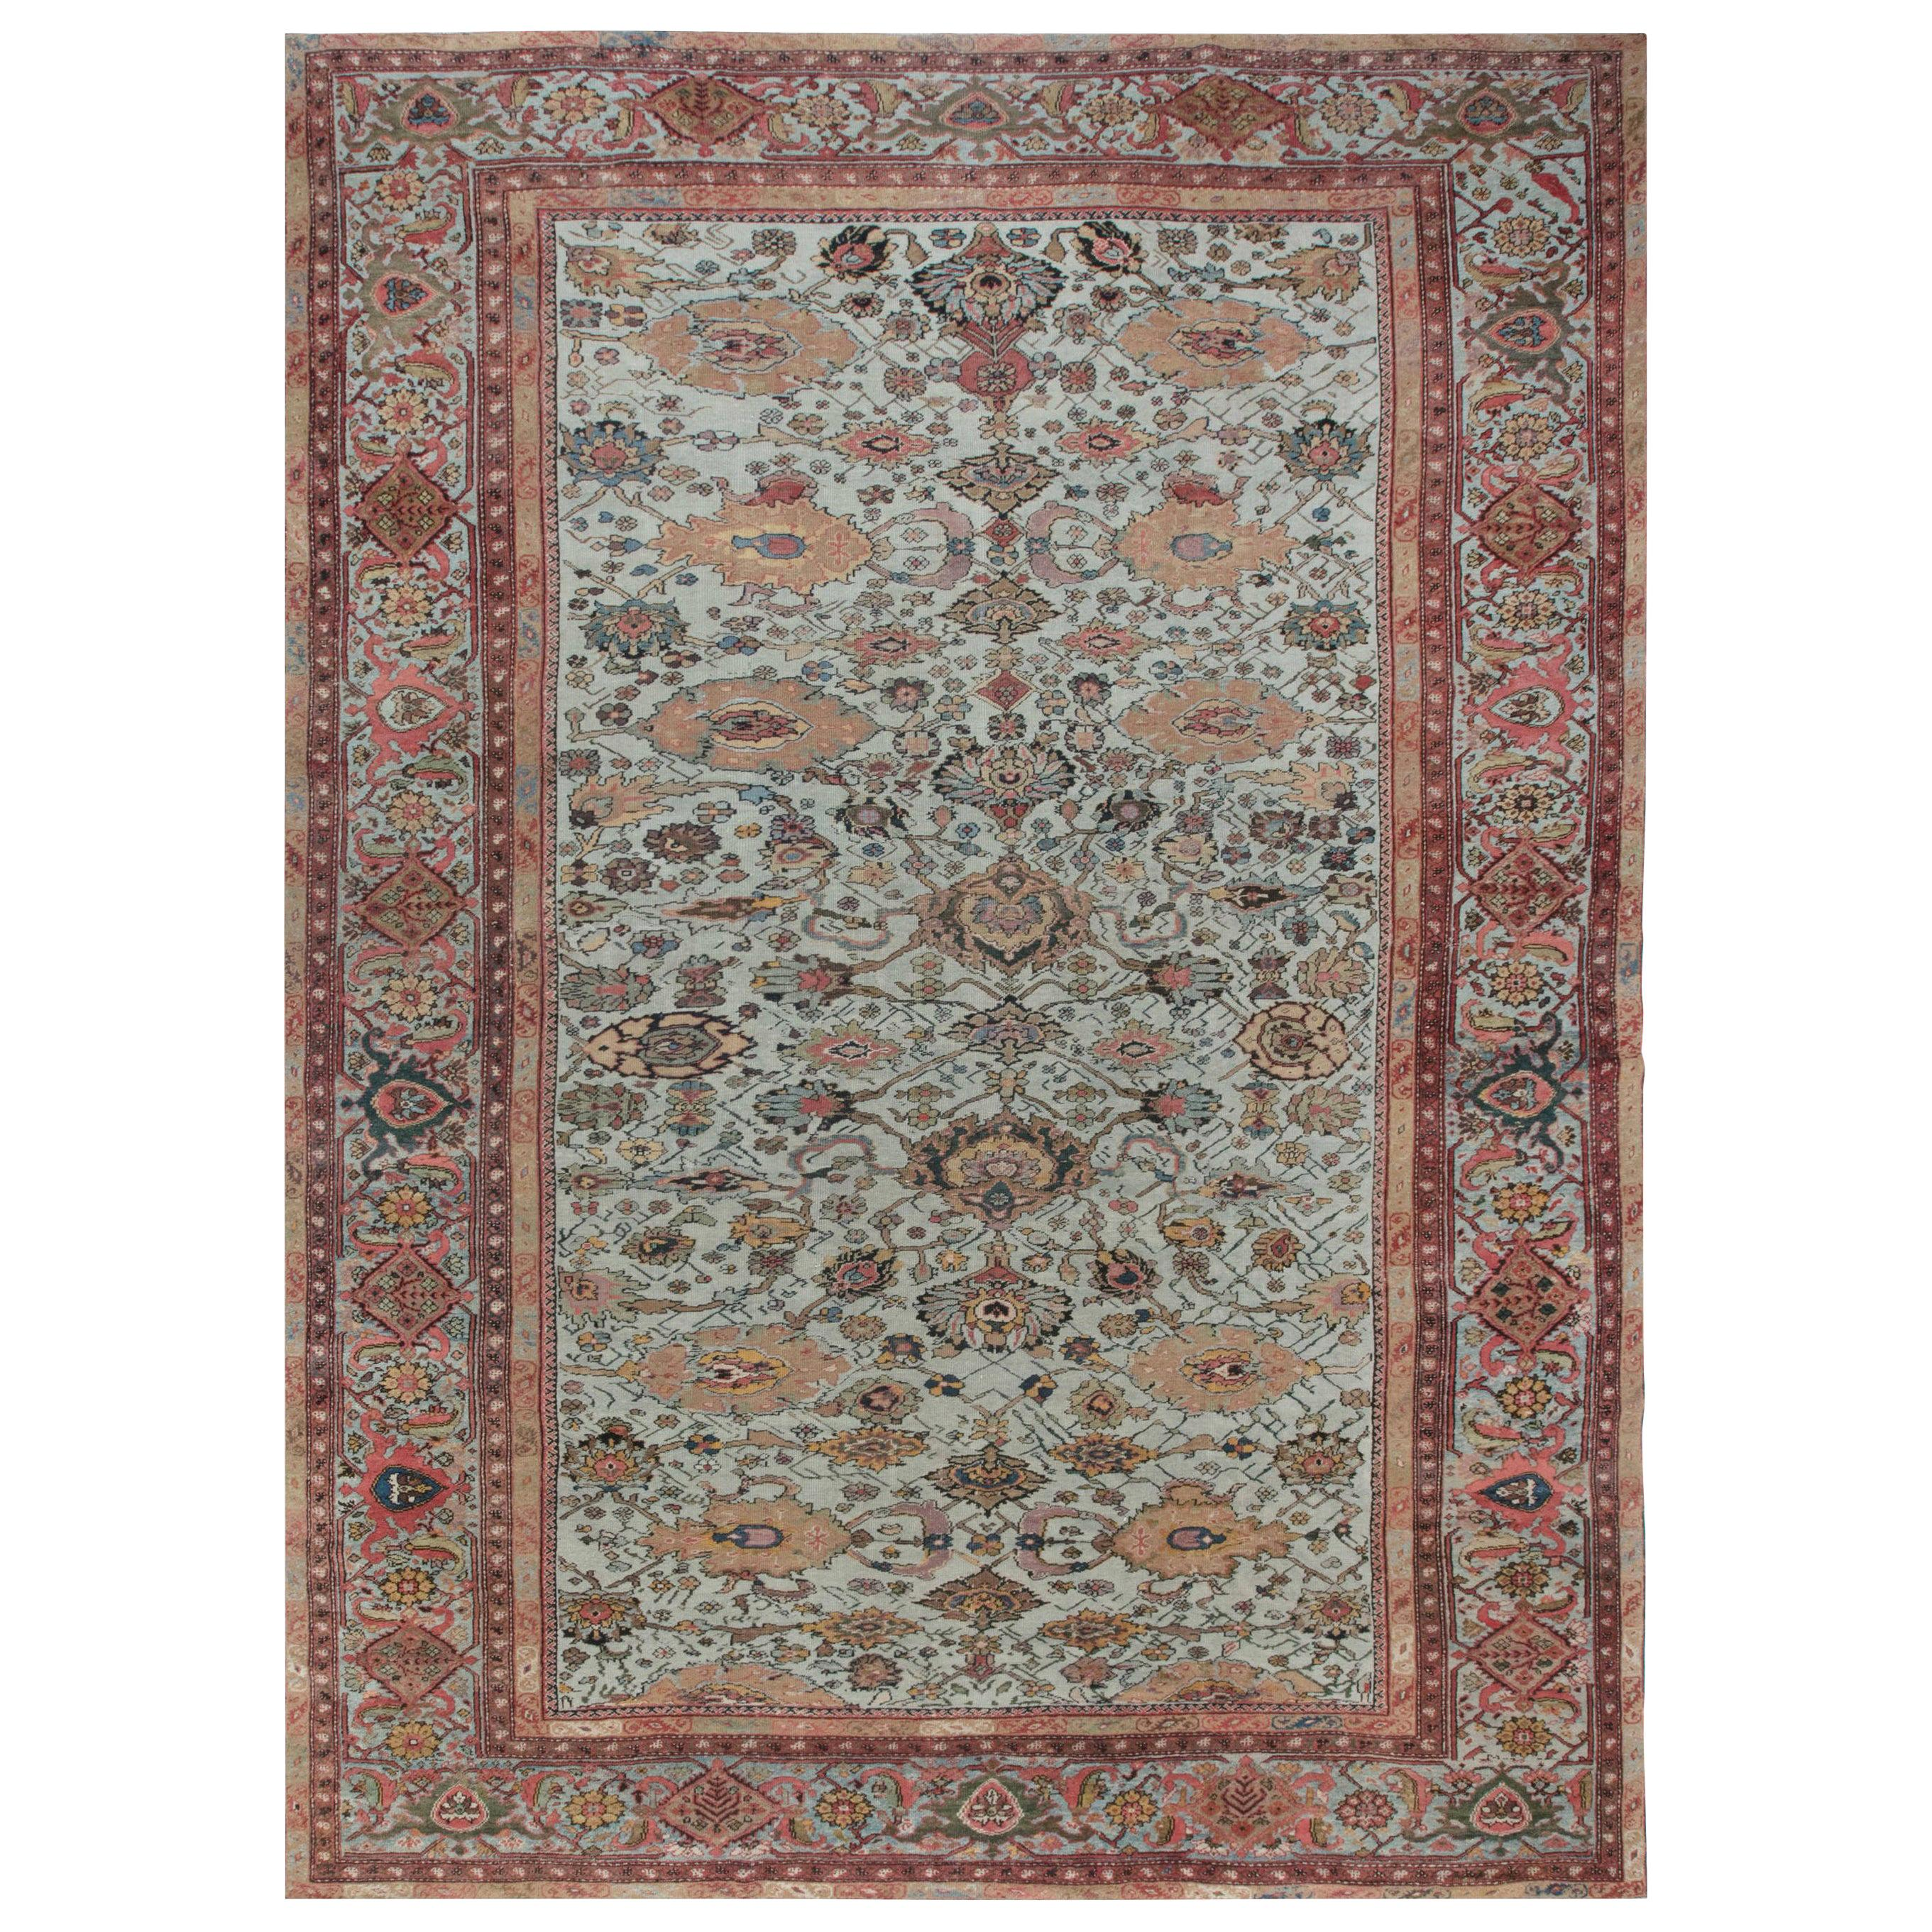 Antique Persian Sultanabad Blue, Red Beige and Brown Handwoven Wool Rug